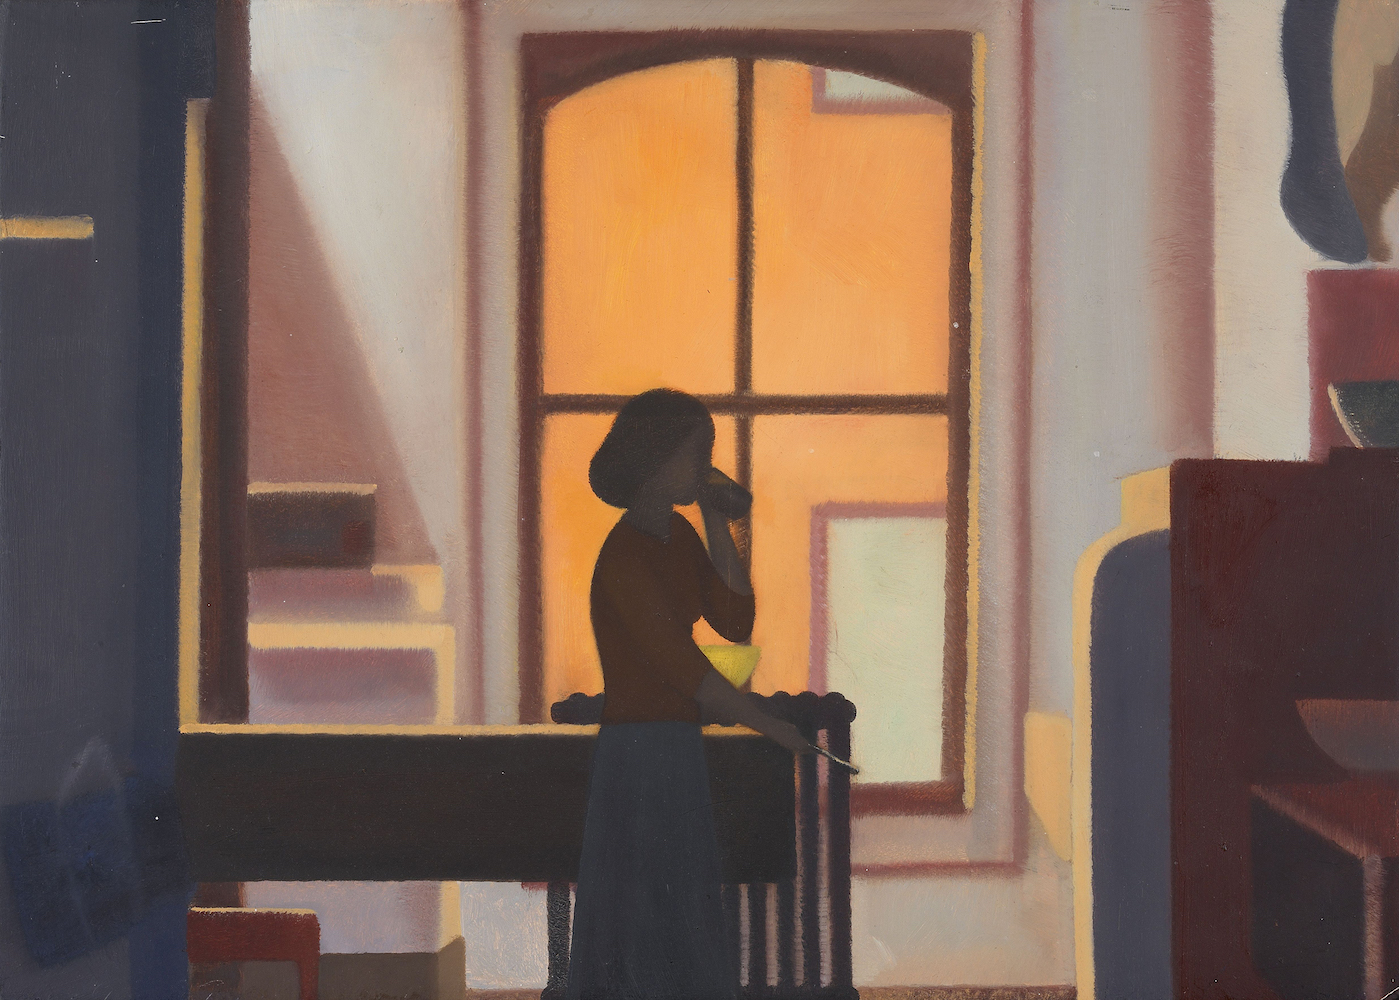 Helen Miranda Wilson, Interior Kitchen, 1980. Heckscher Museum of Art; Gift of Martin, Richard, Nancy, and James Sinkoff in loving memory of their parents, Alice and Marvin Sinkoff.